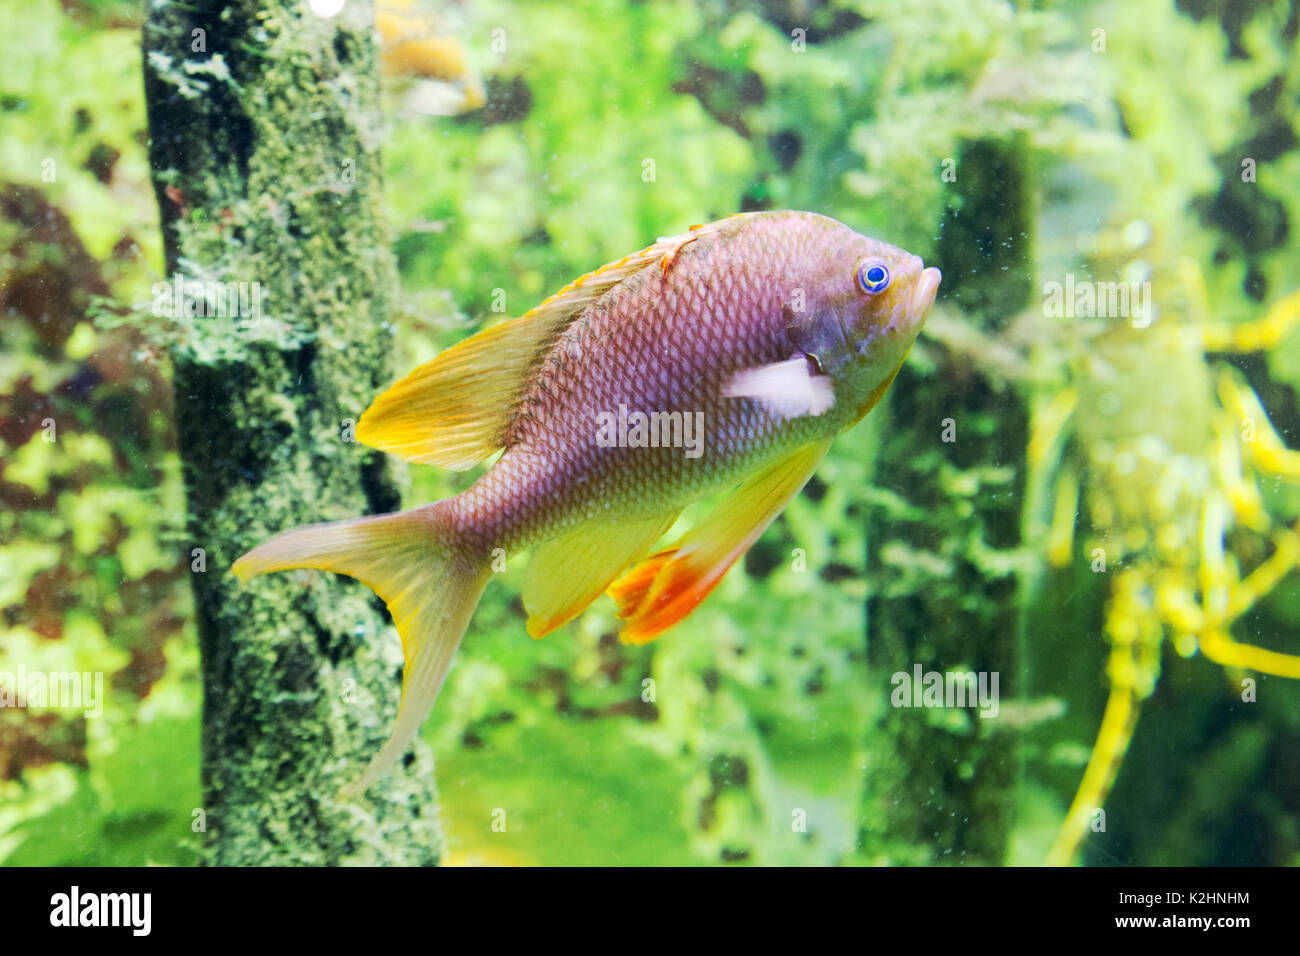 Fish perch stock photos fish perch stock images alamy for Ocean perch fish